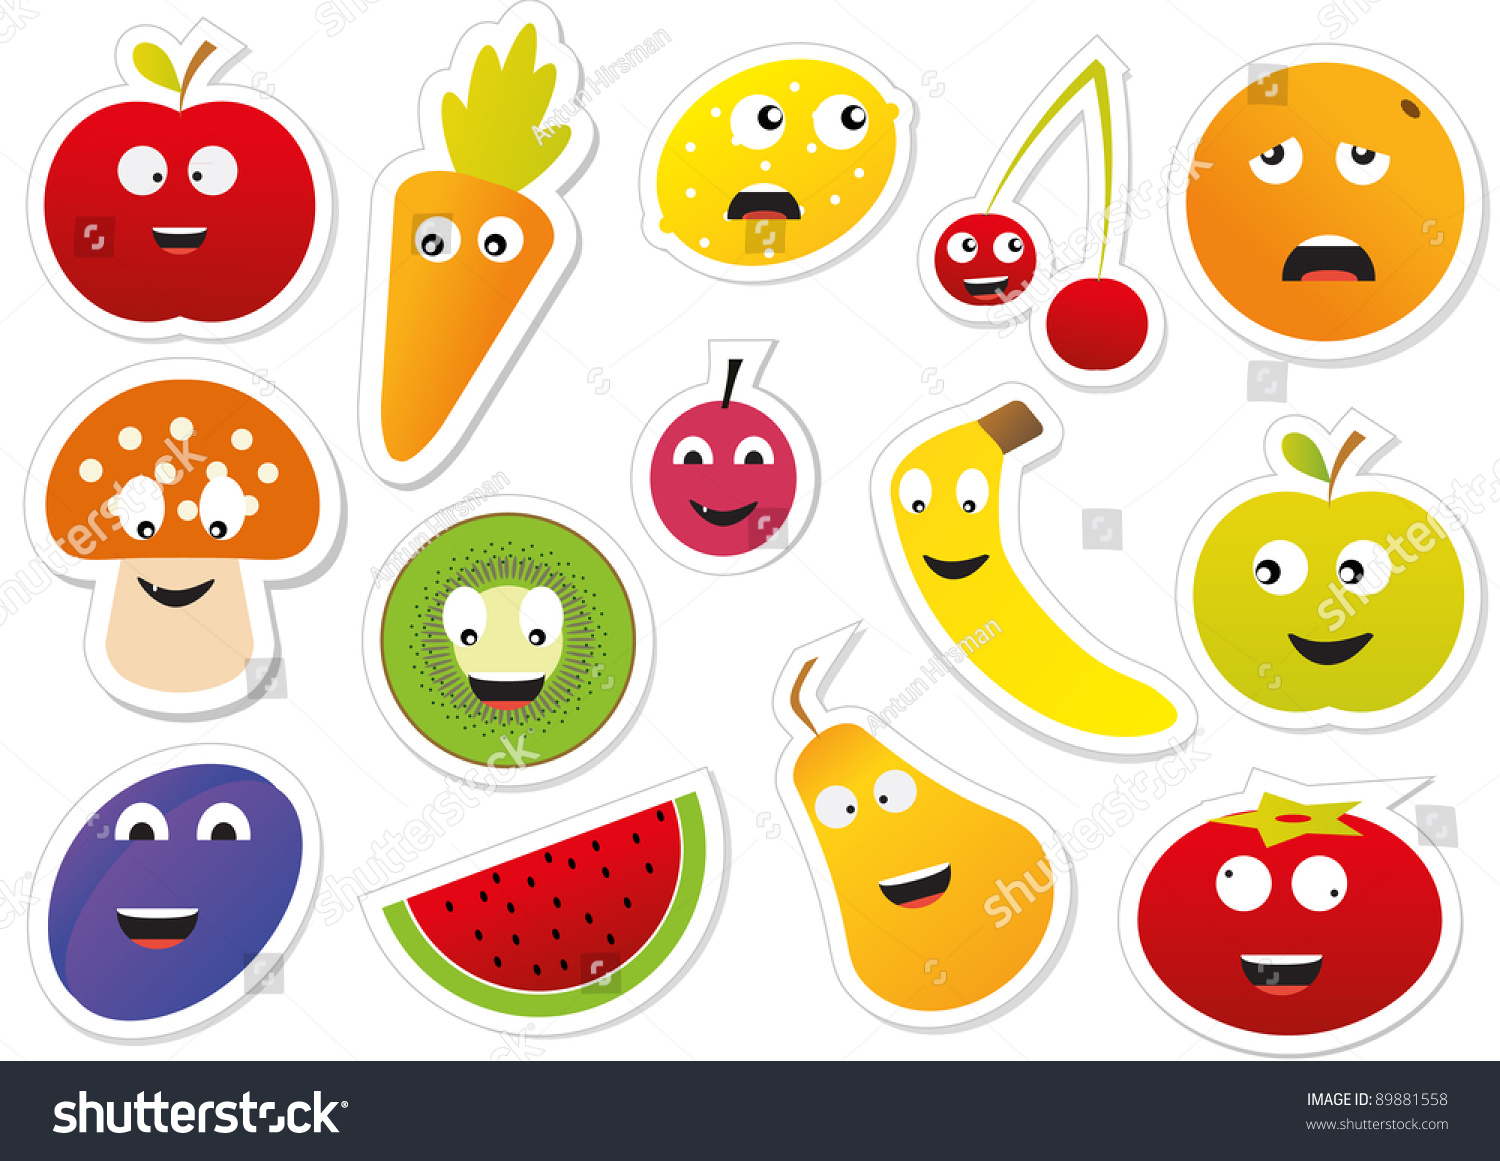 Vector food stickers 89881558 shutterstock - Stickers miroir cuisine ...